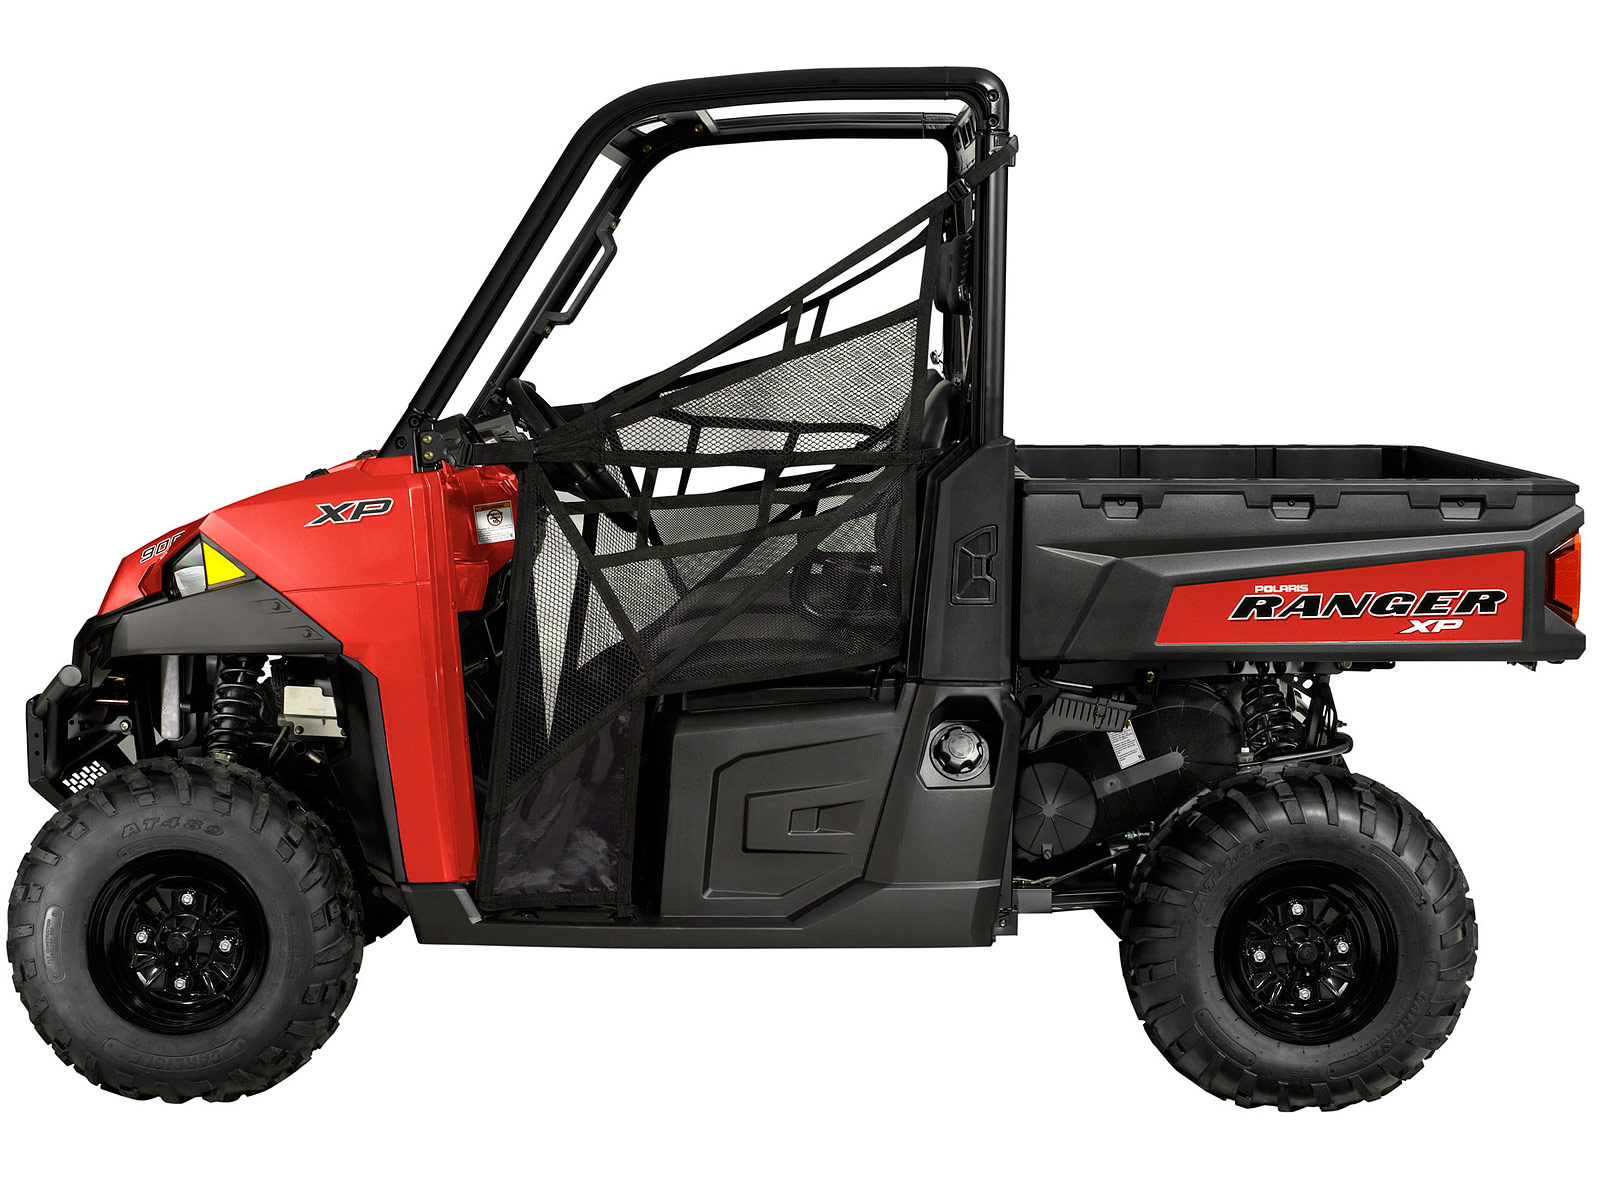 POLARIS Atv Pictures. 2013 Ranger XP900 pictures ...